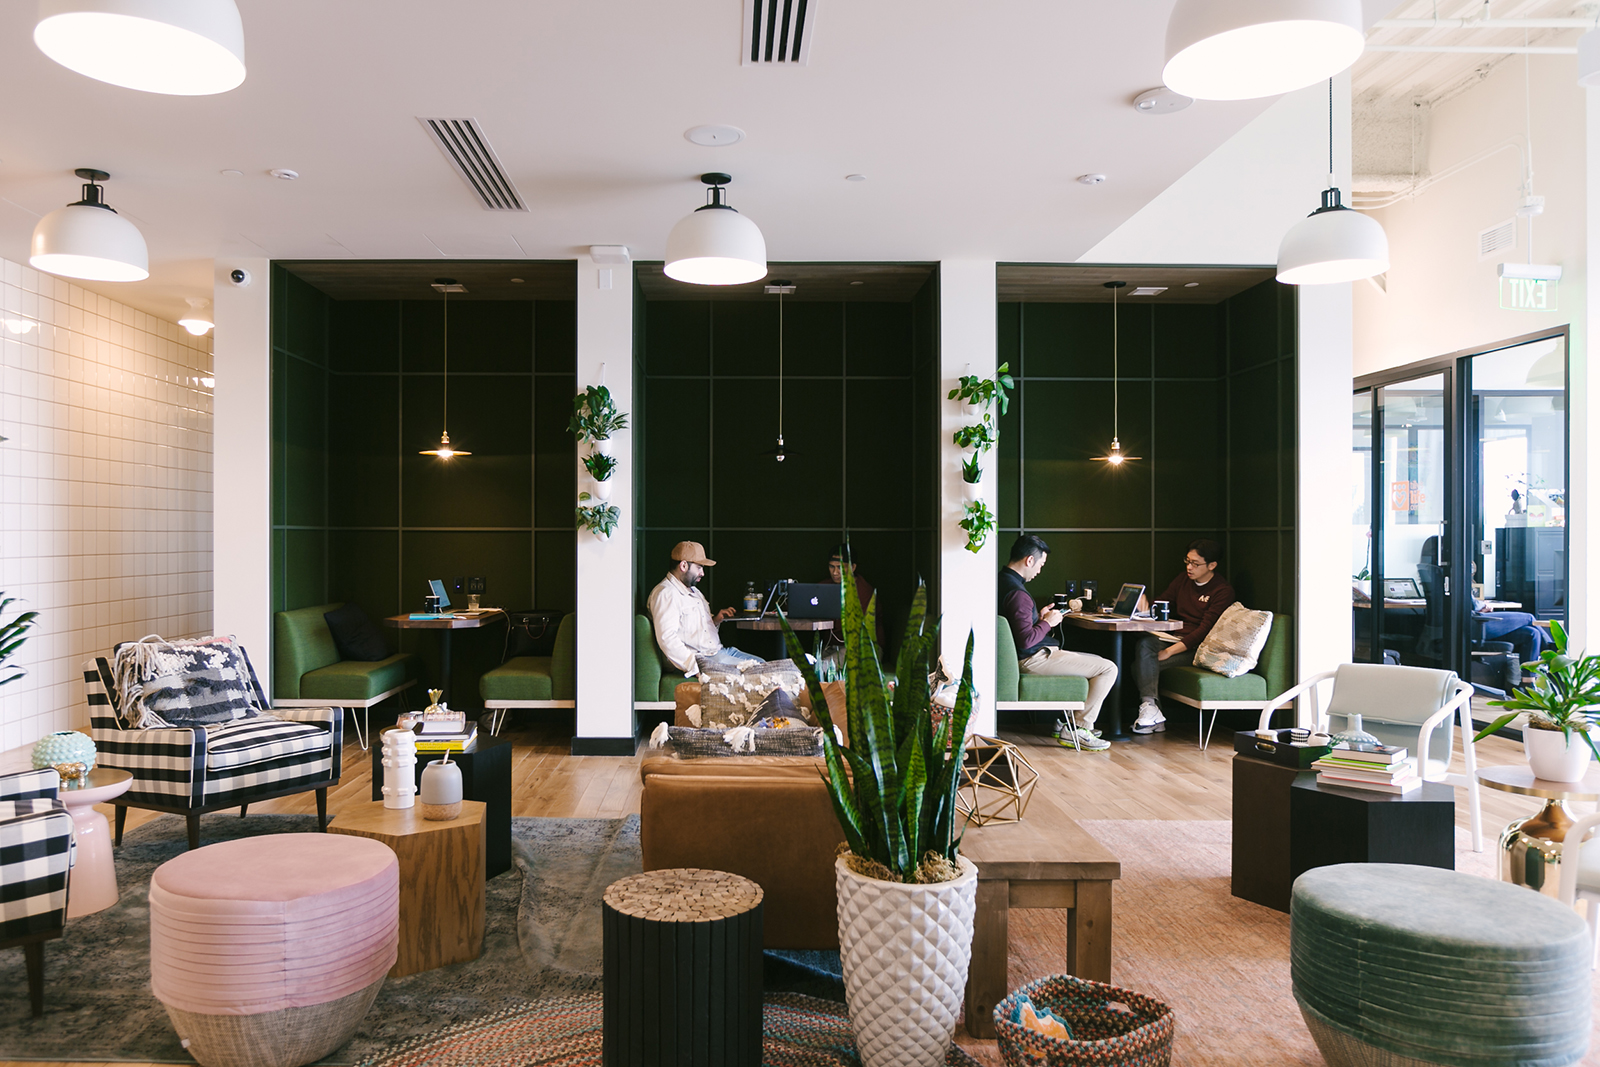 WEWORK IRVINE | image source: officelovin